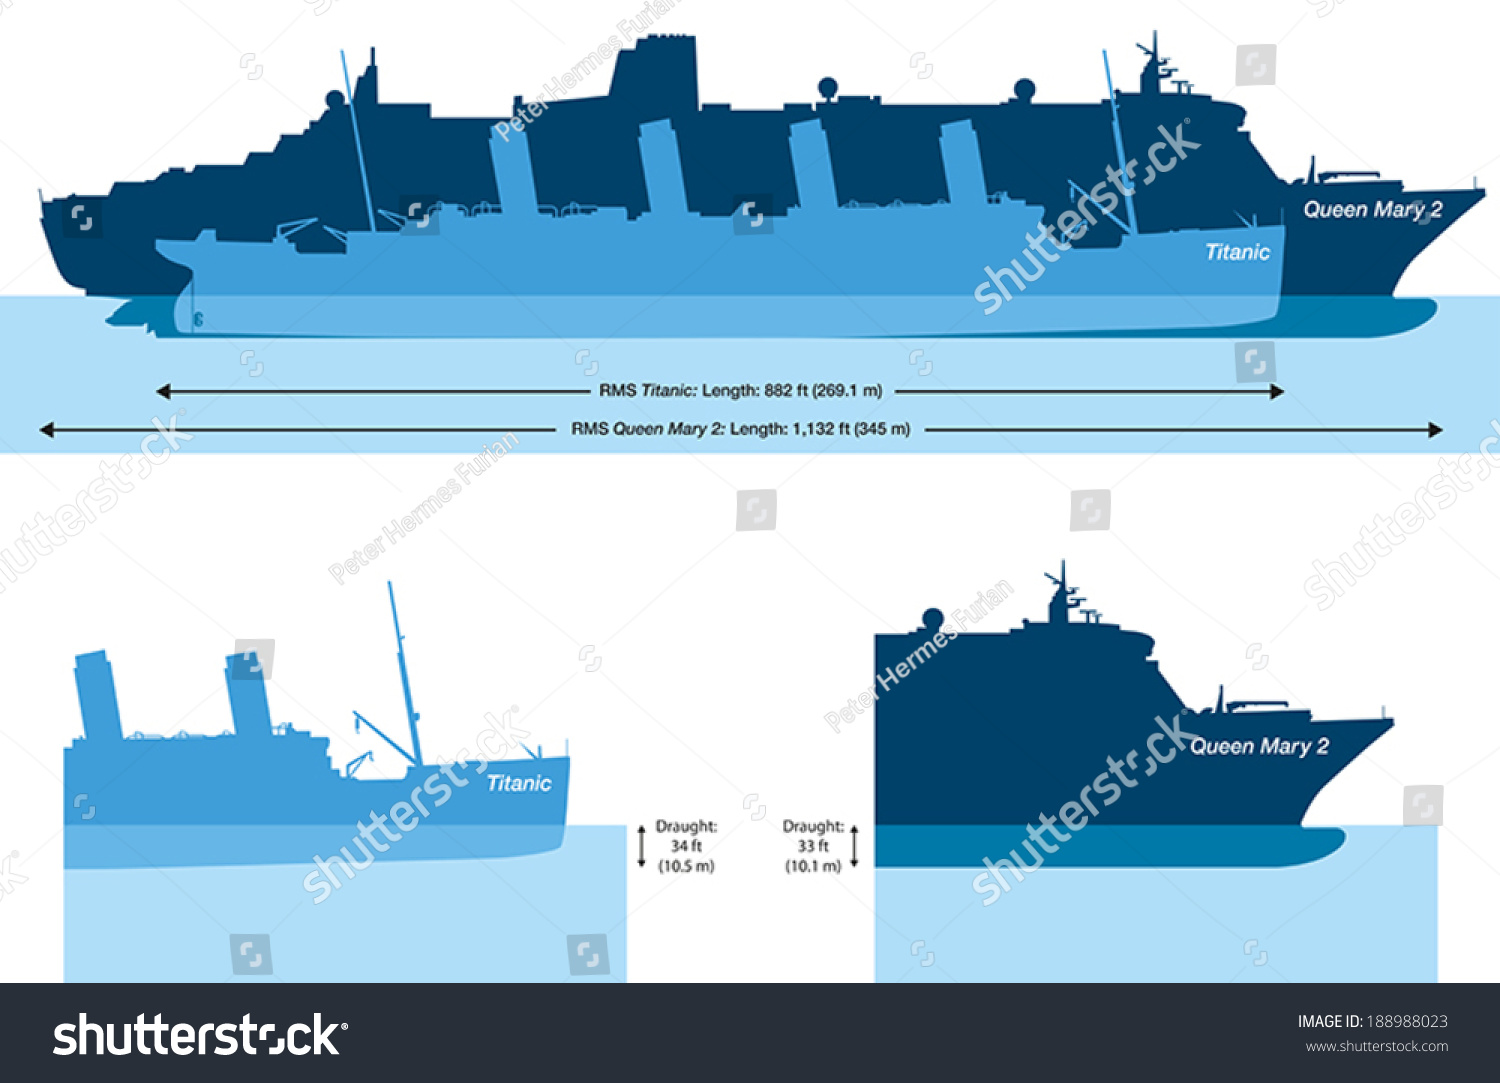 hight resolution of titanic and queen mary 2 size comparison and water depth at the titanic and queen